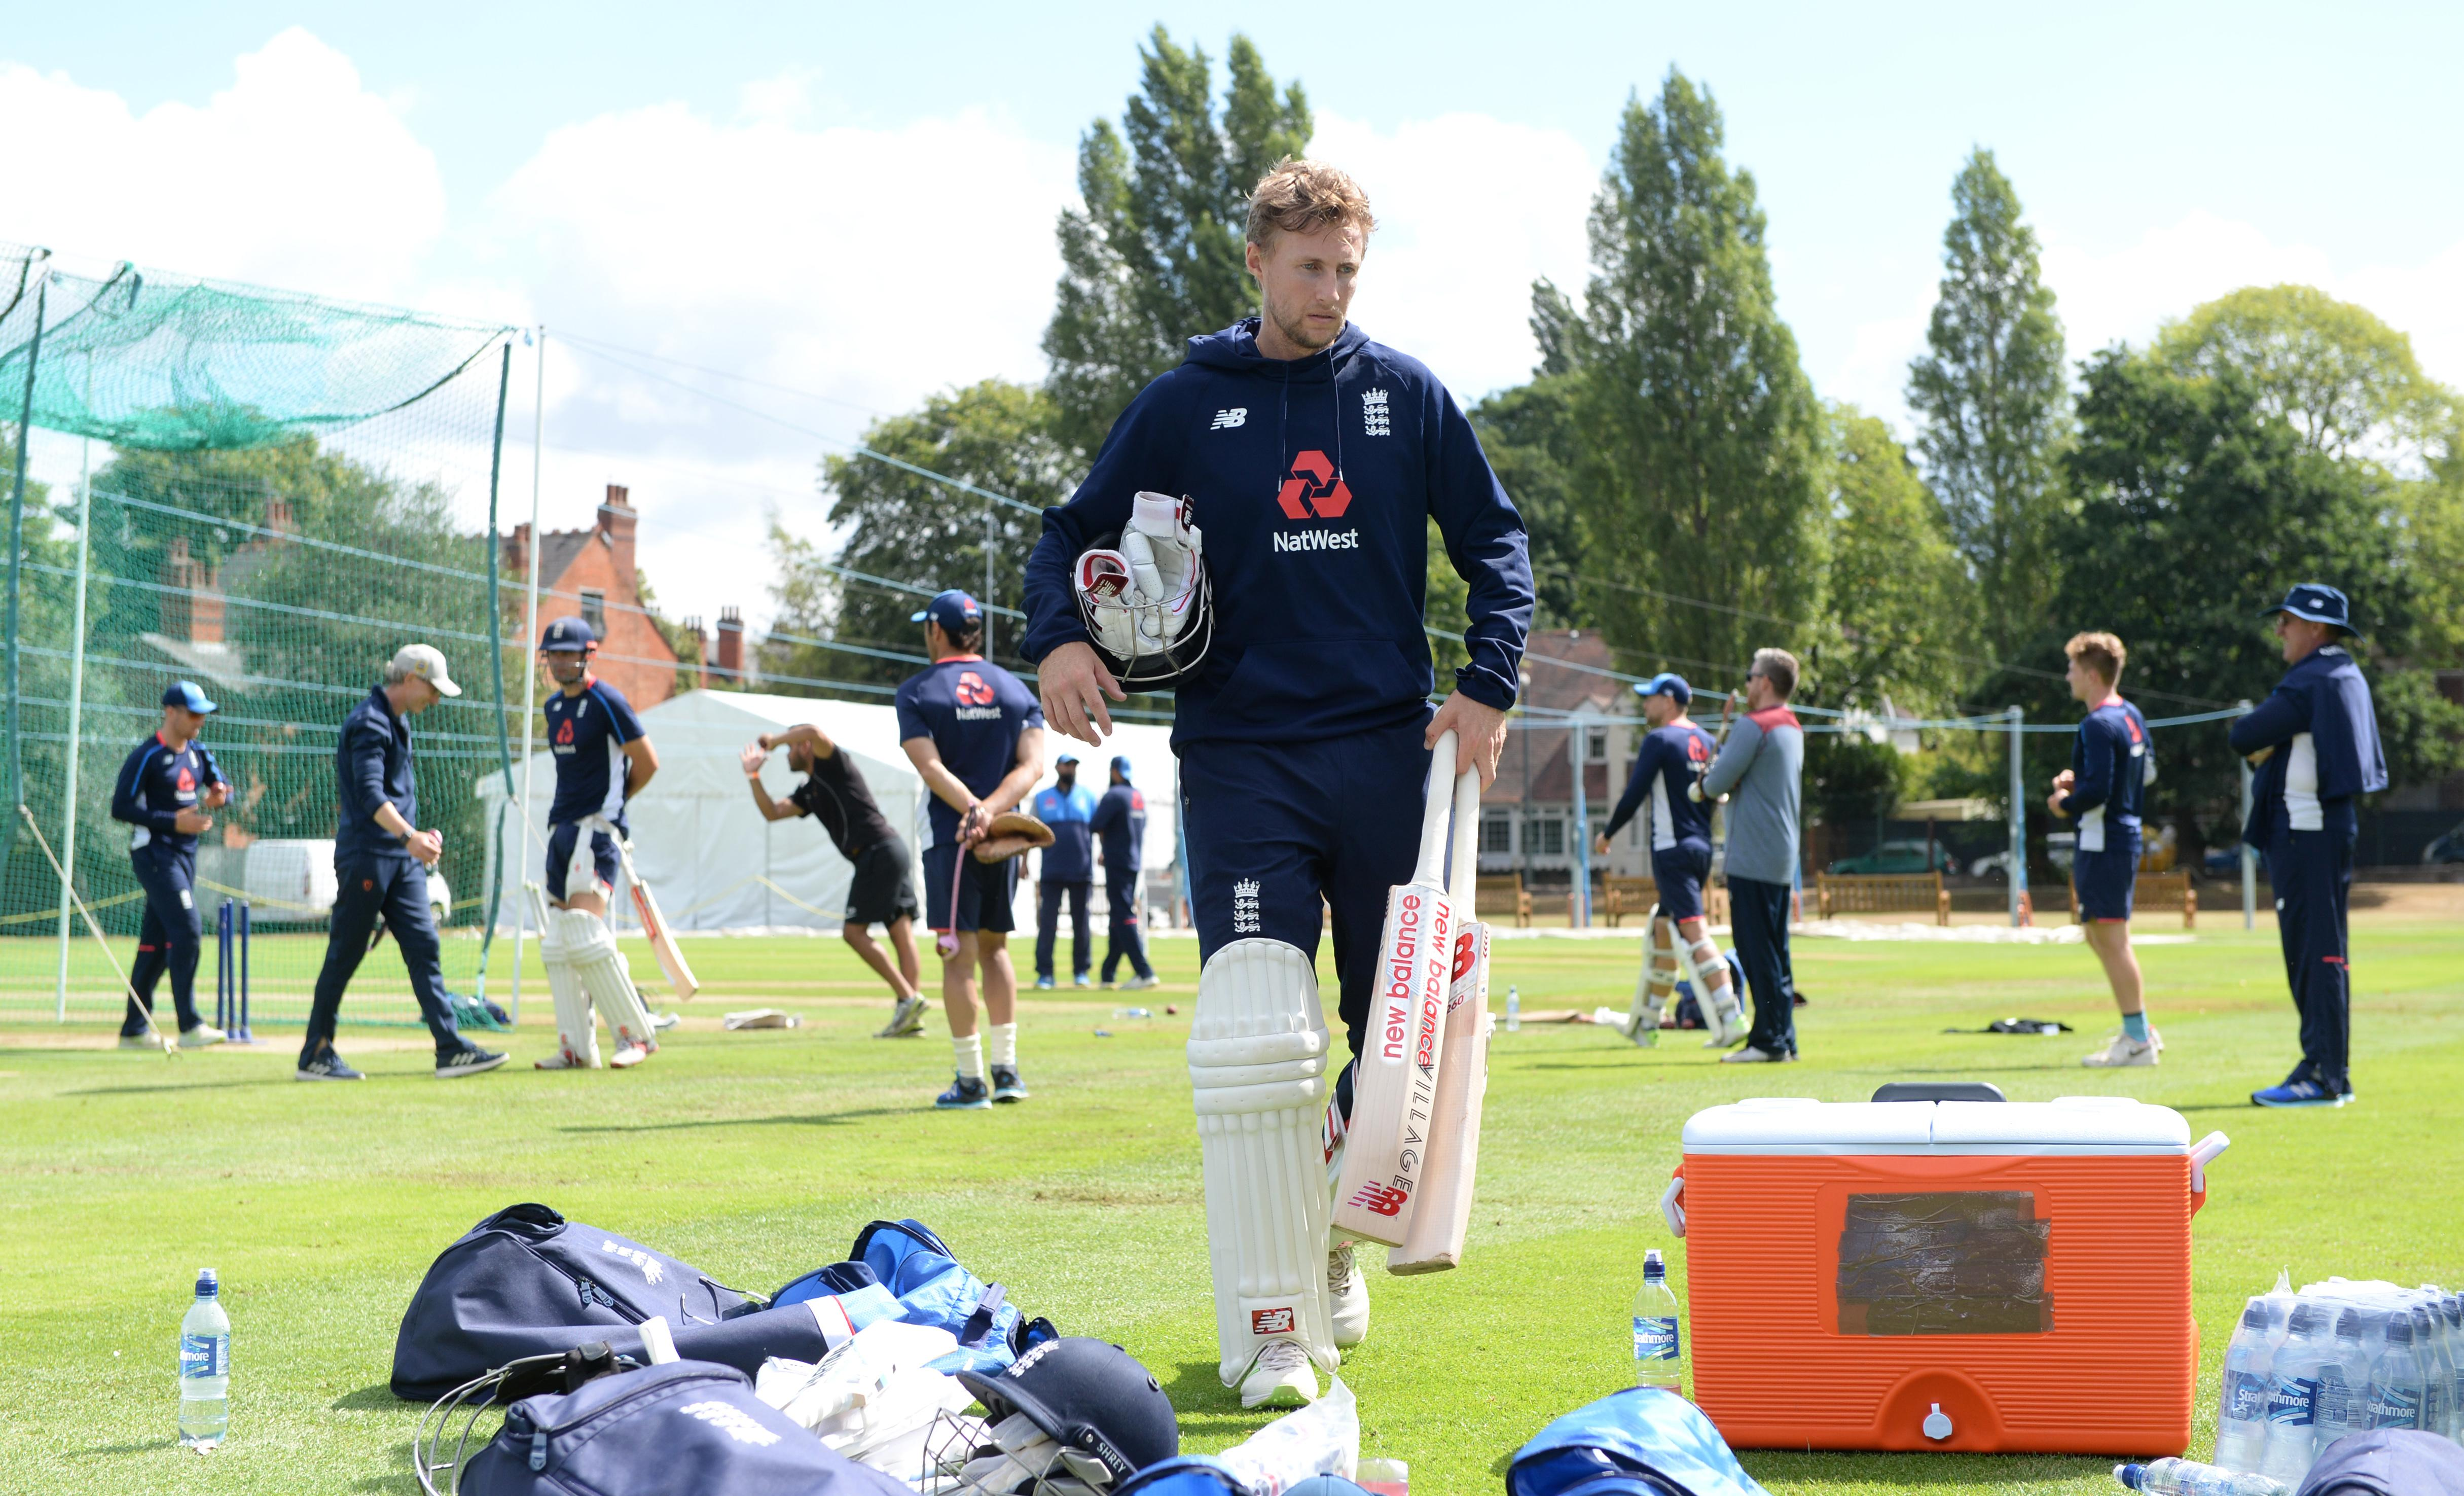 Joe Root has had a year to put his stamp on the England Test team but must now start winning